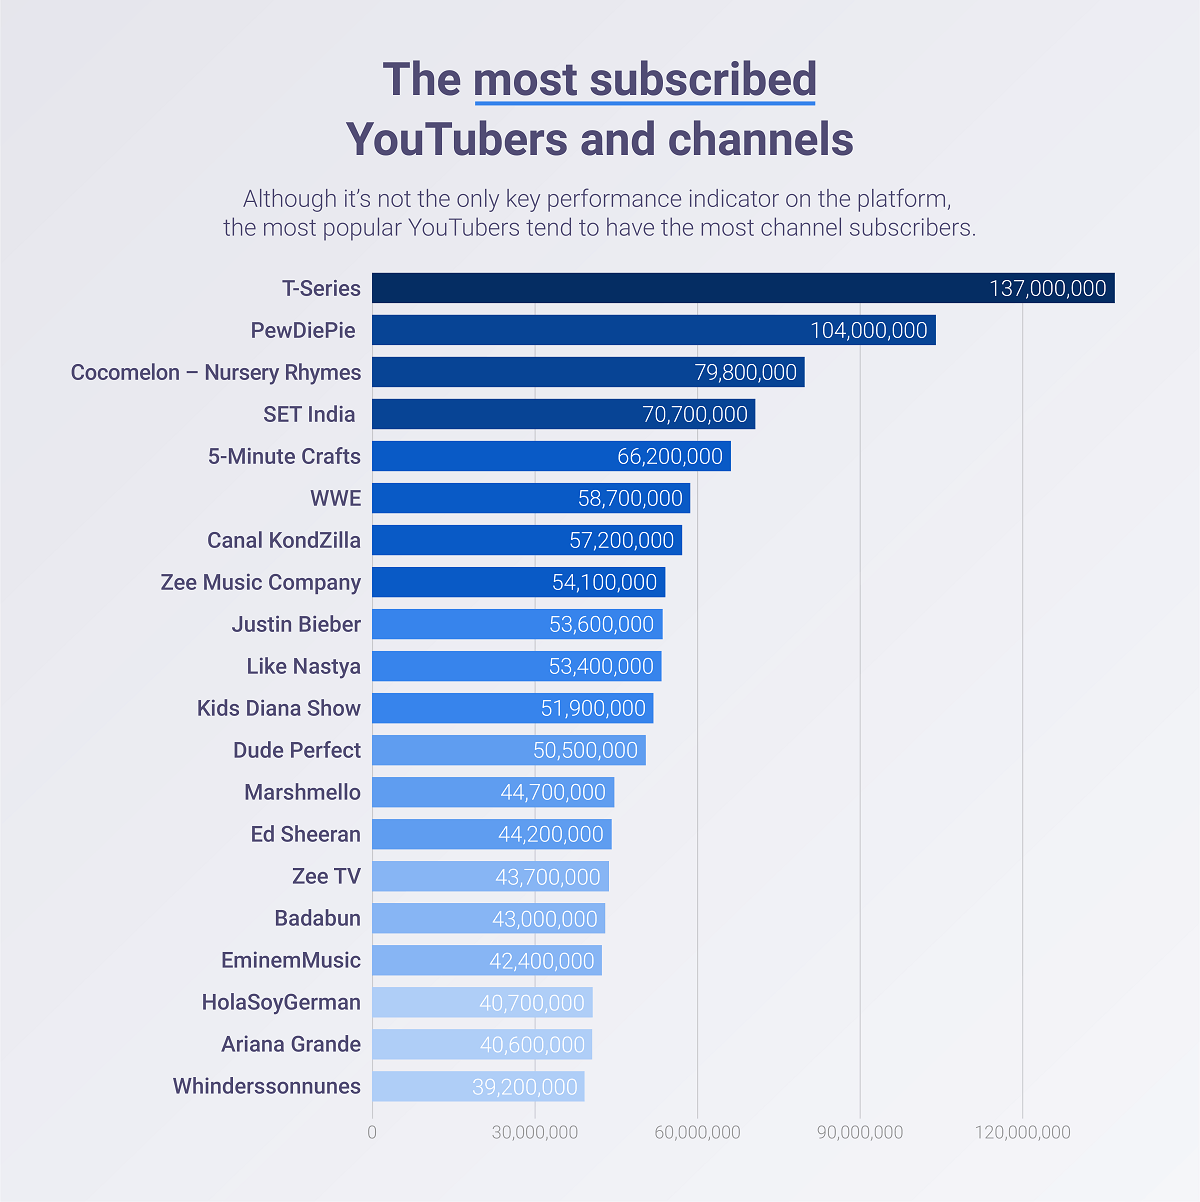 The most subscribed YouTubers and channels